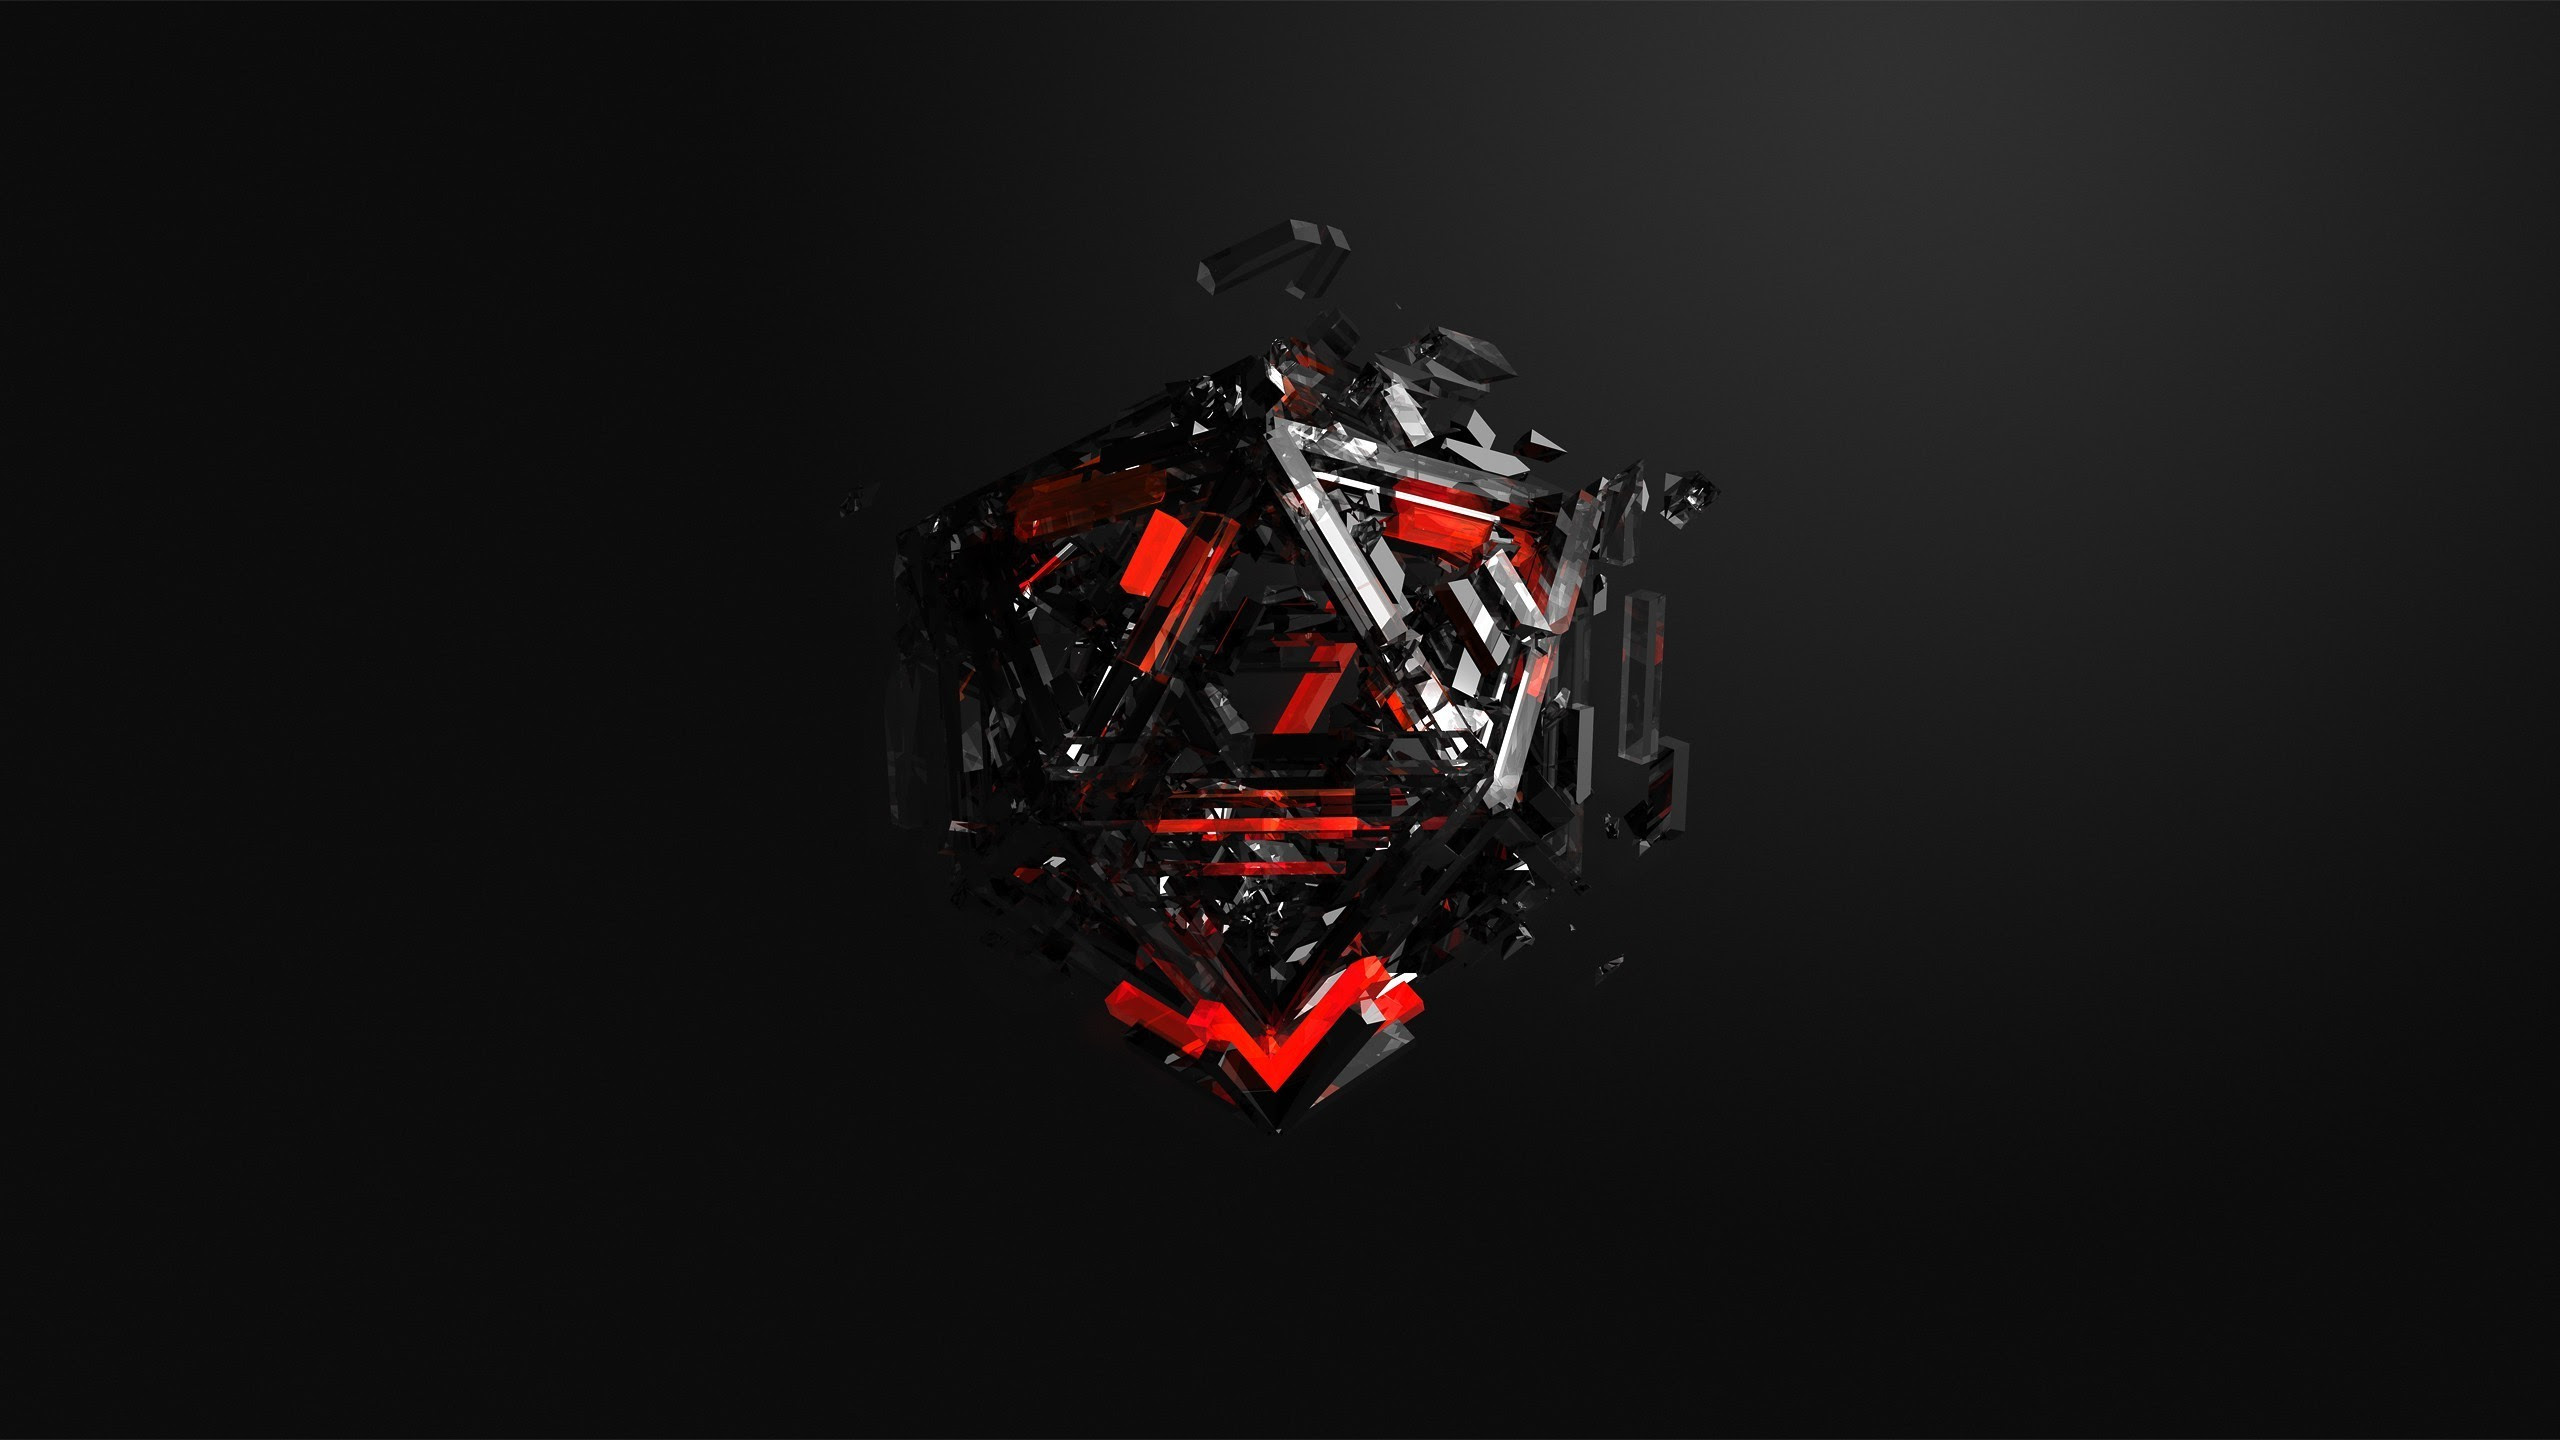 Cgi Cube Black Red Wallpapers Hd Desktop And Mobile Backgrounds